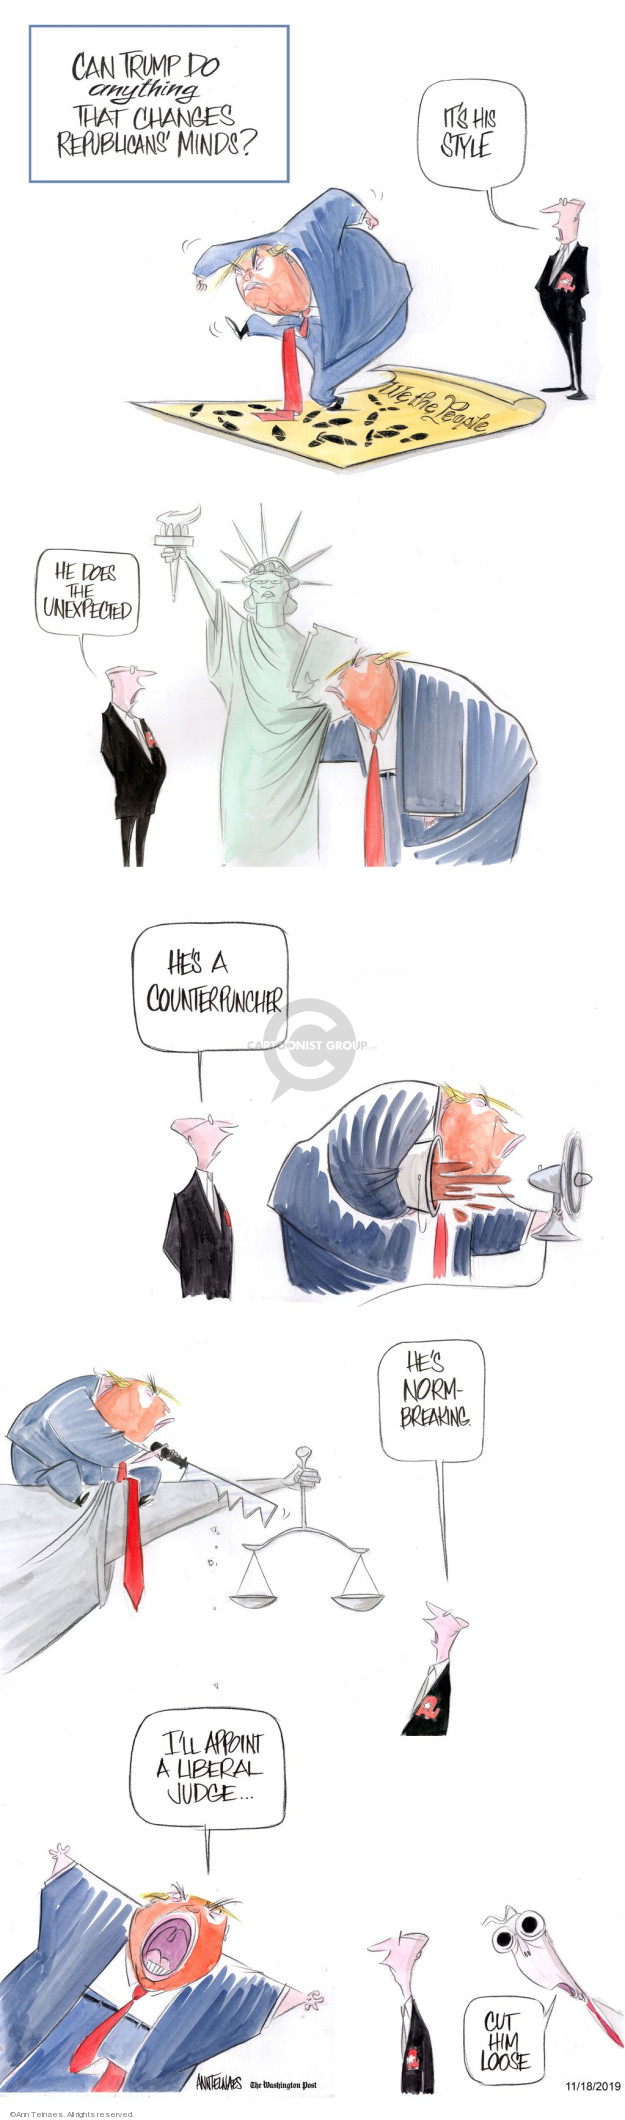 Cartoonist Ann Telnaes  Ann Telnaes' Editorial Cartoons 2019-11-18 senate